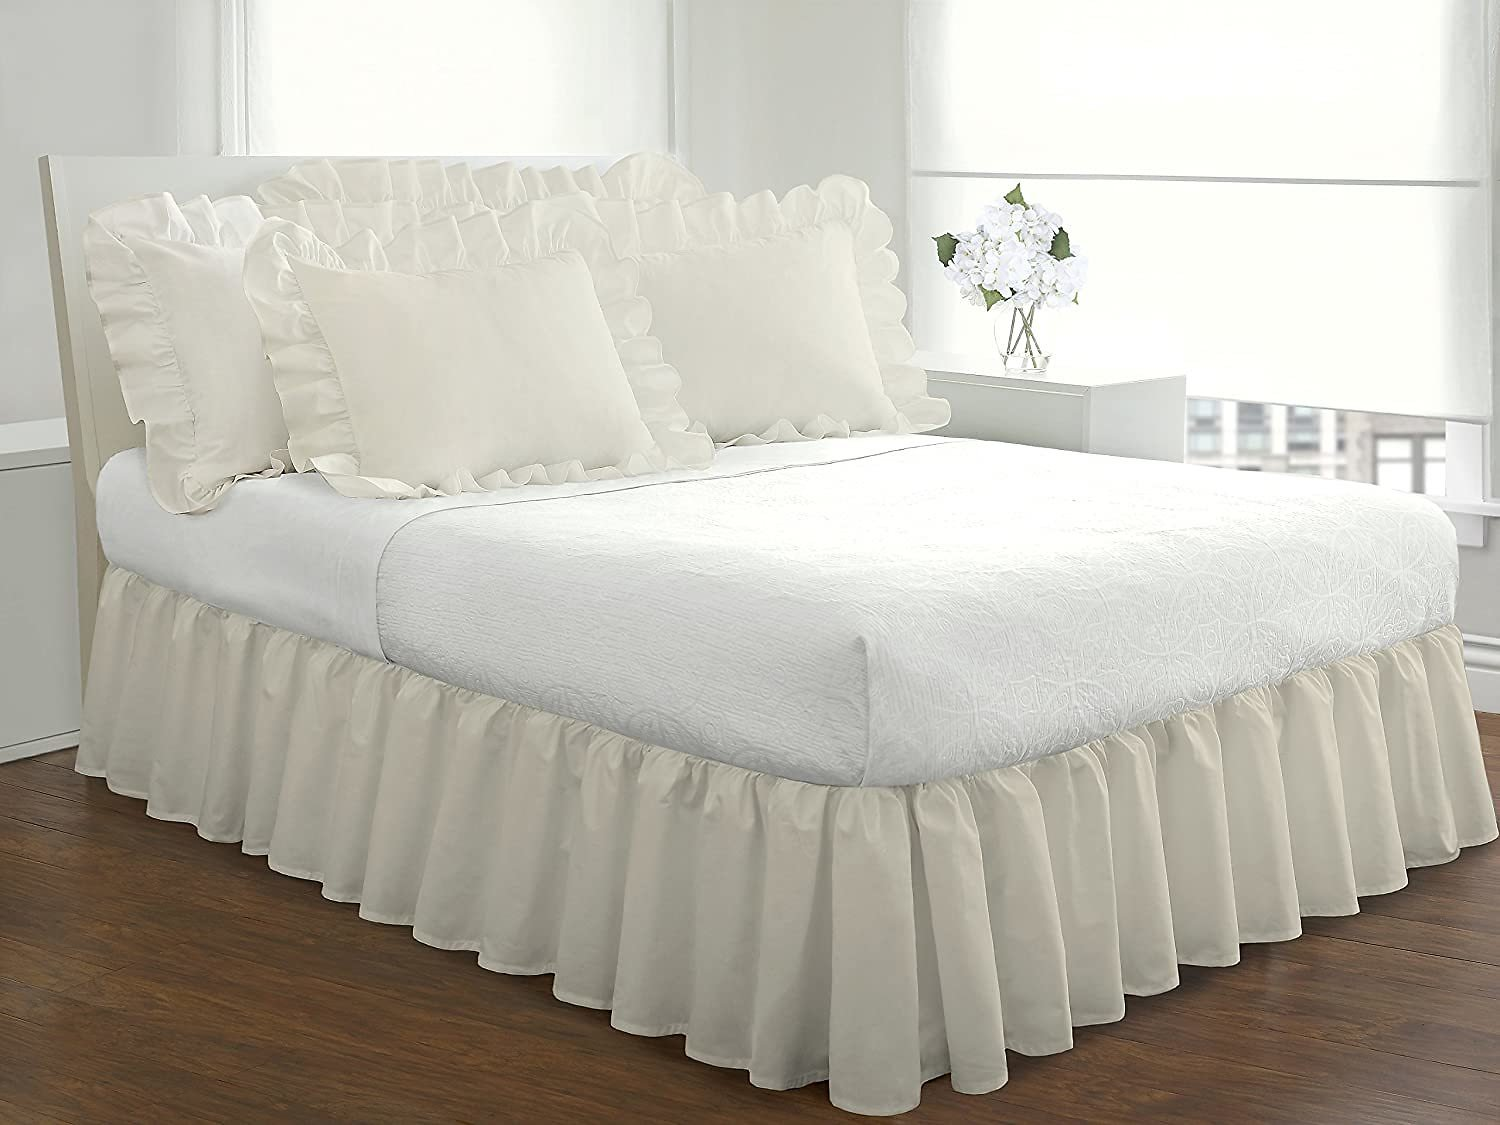 "Fresh Ideas Bedding Ruffled Bedskirt, Classic 14"" Drop Length, Gathered Styling, Queen, Ivory"